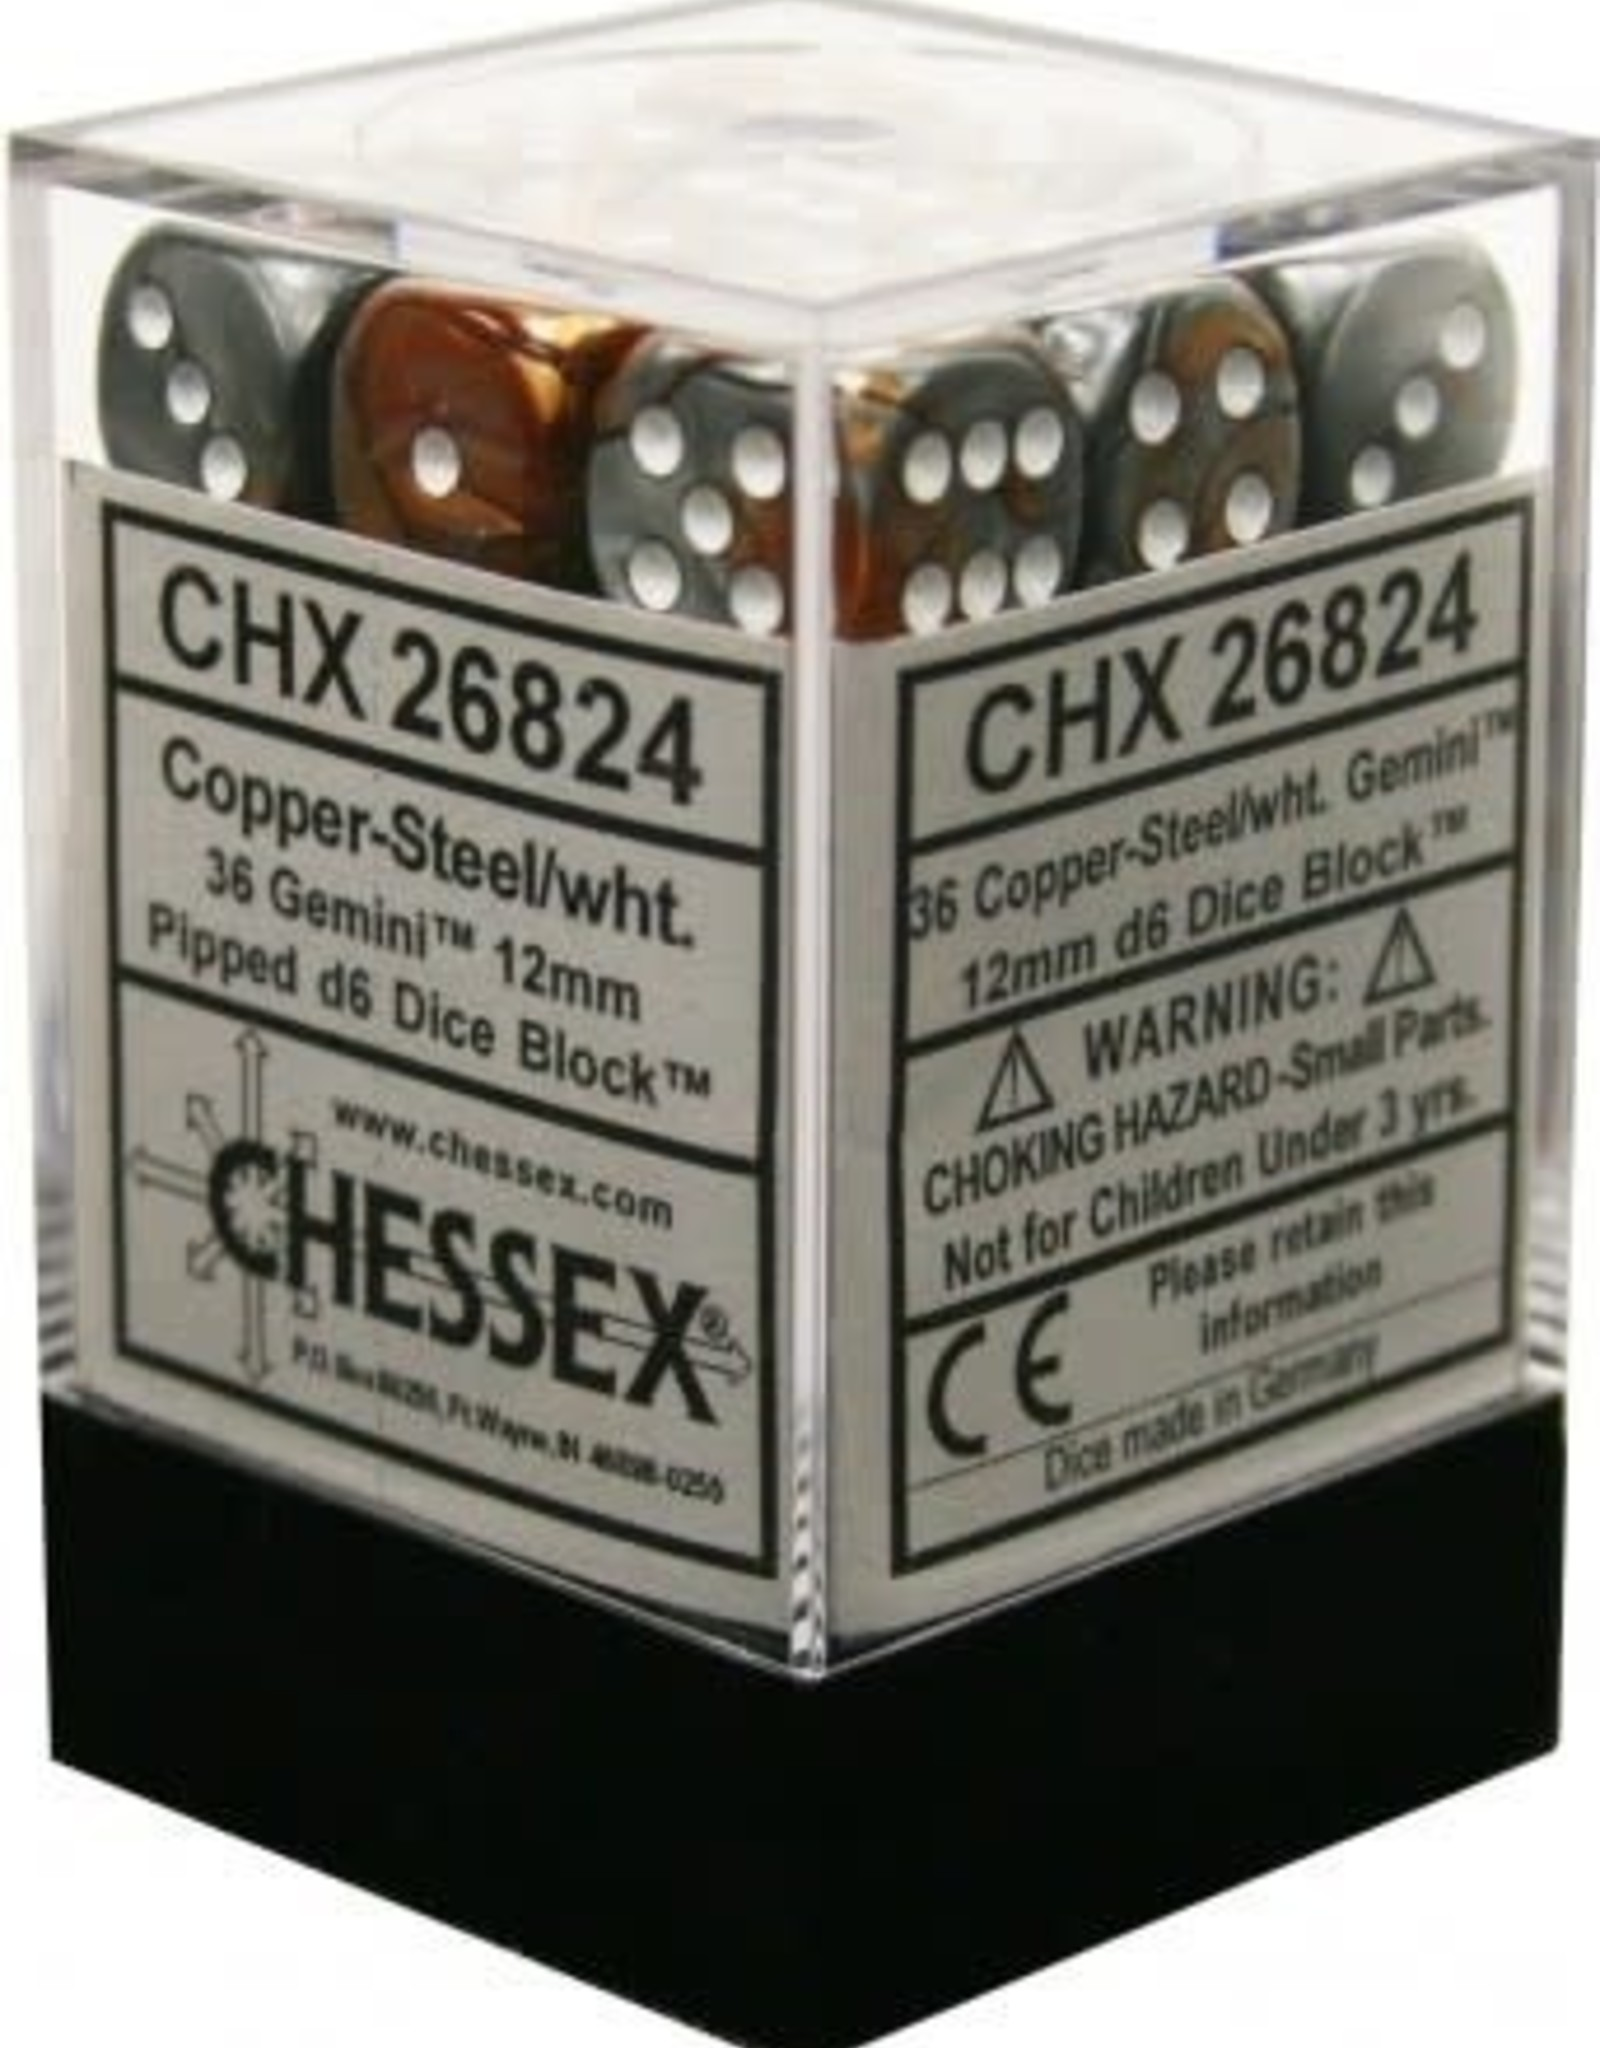 Chessex Chessex Gemini Copper Steel w/White Set of 36 d6 Dice (CHX26824)